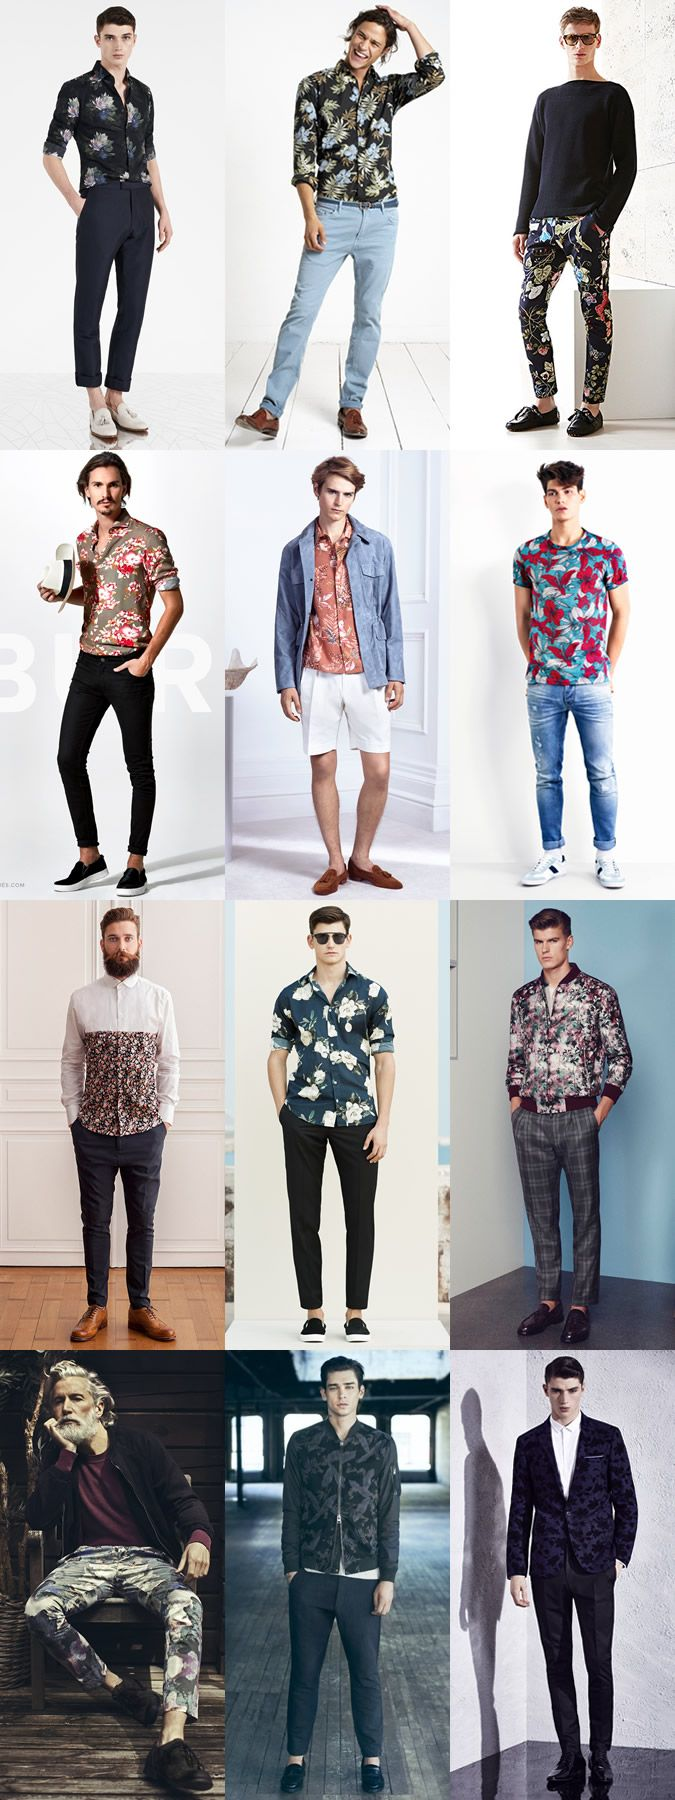 Men's Floral Clothing Spring/Summer Outfit Inspiration Lookbook